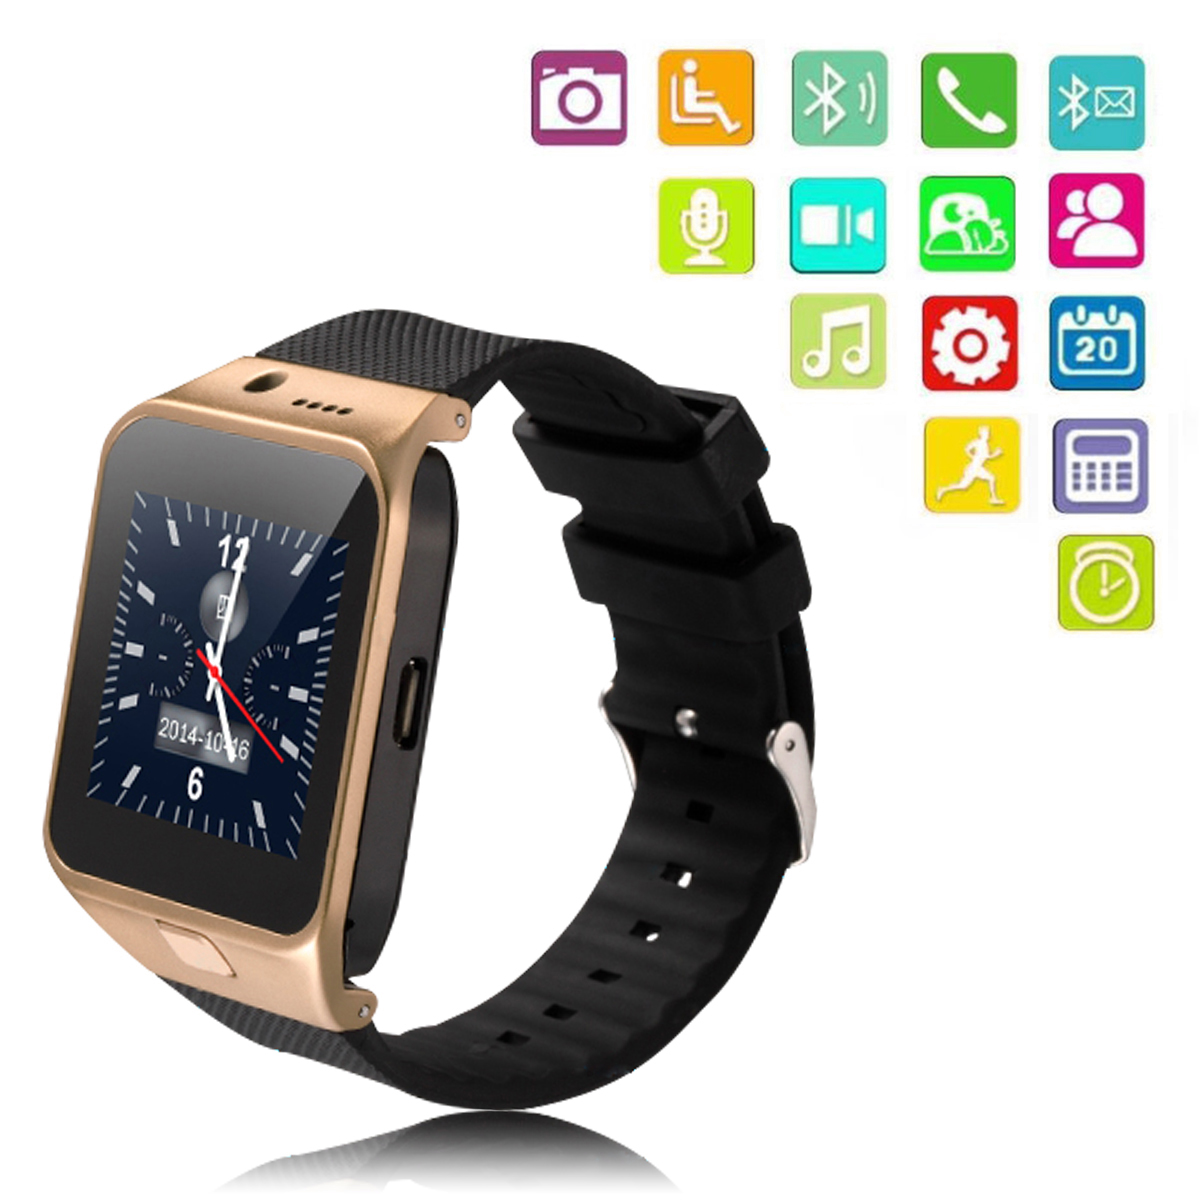 Bluetooth Smart Watch Sport WristWatch GV10 For Apple iPhone Samsung Support Sync Call Message Fitness Tracker AC295(China (Mainland))